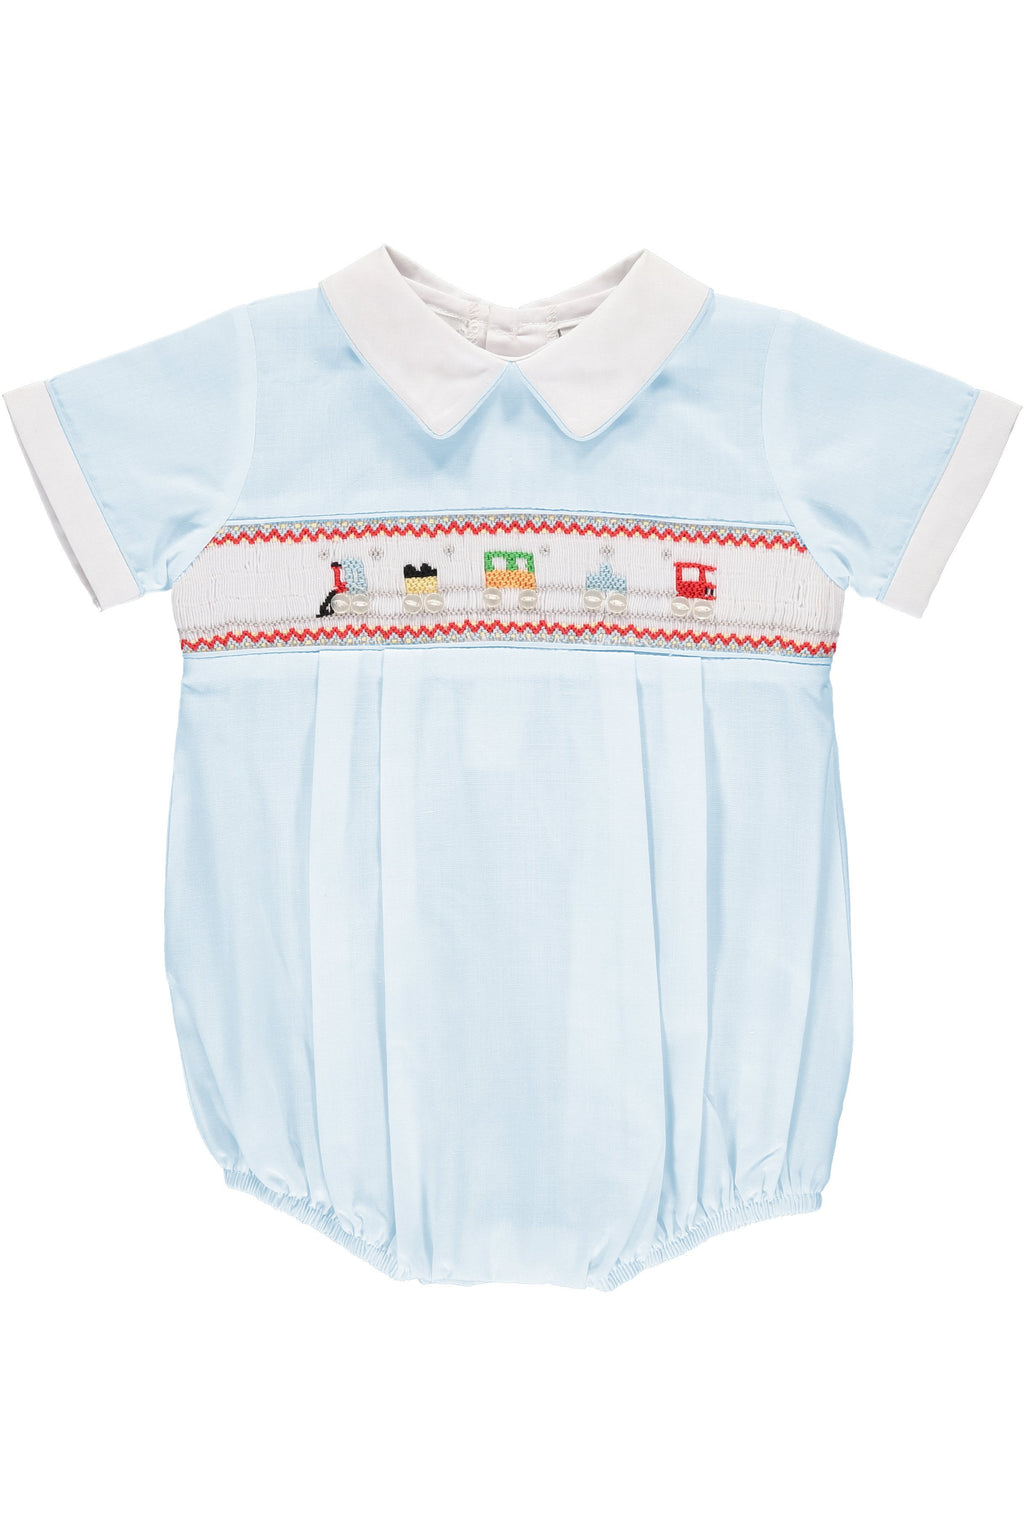 Baby Boys Hand Smocked Creeper - Smocked Trains, , Carriage Boutique, Imagewear